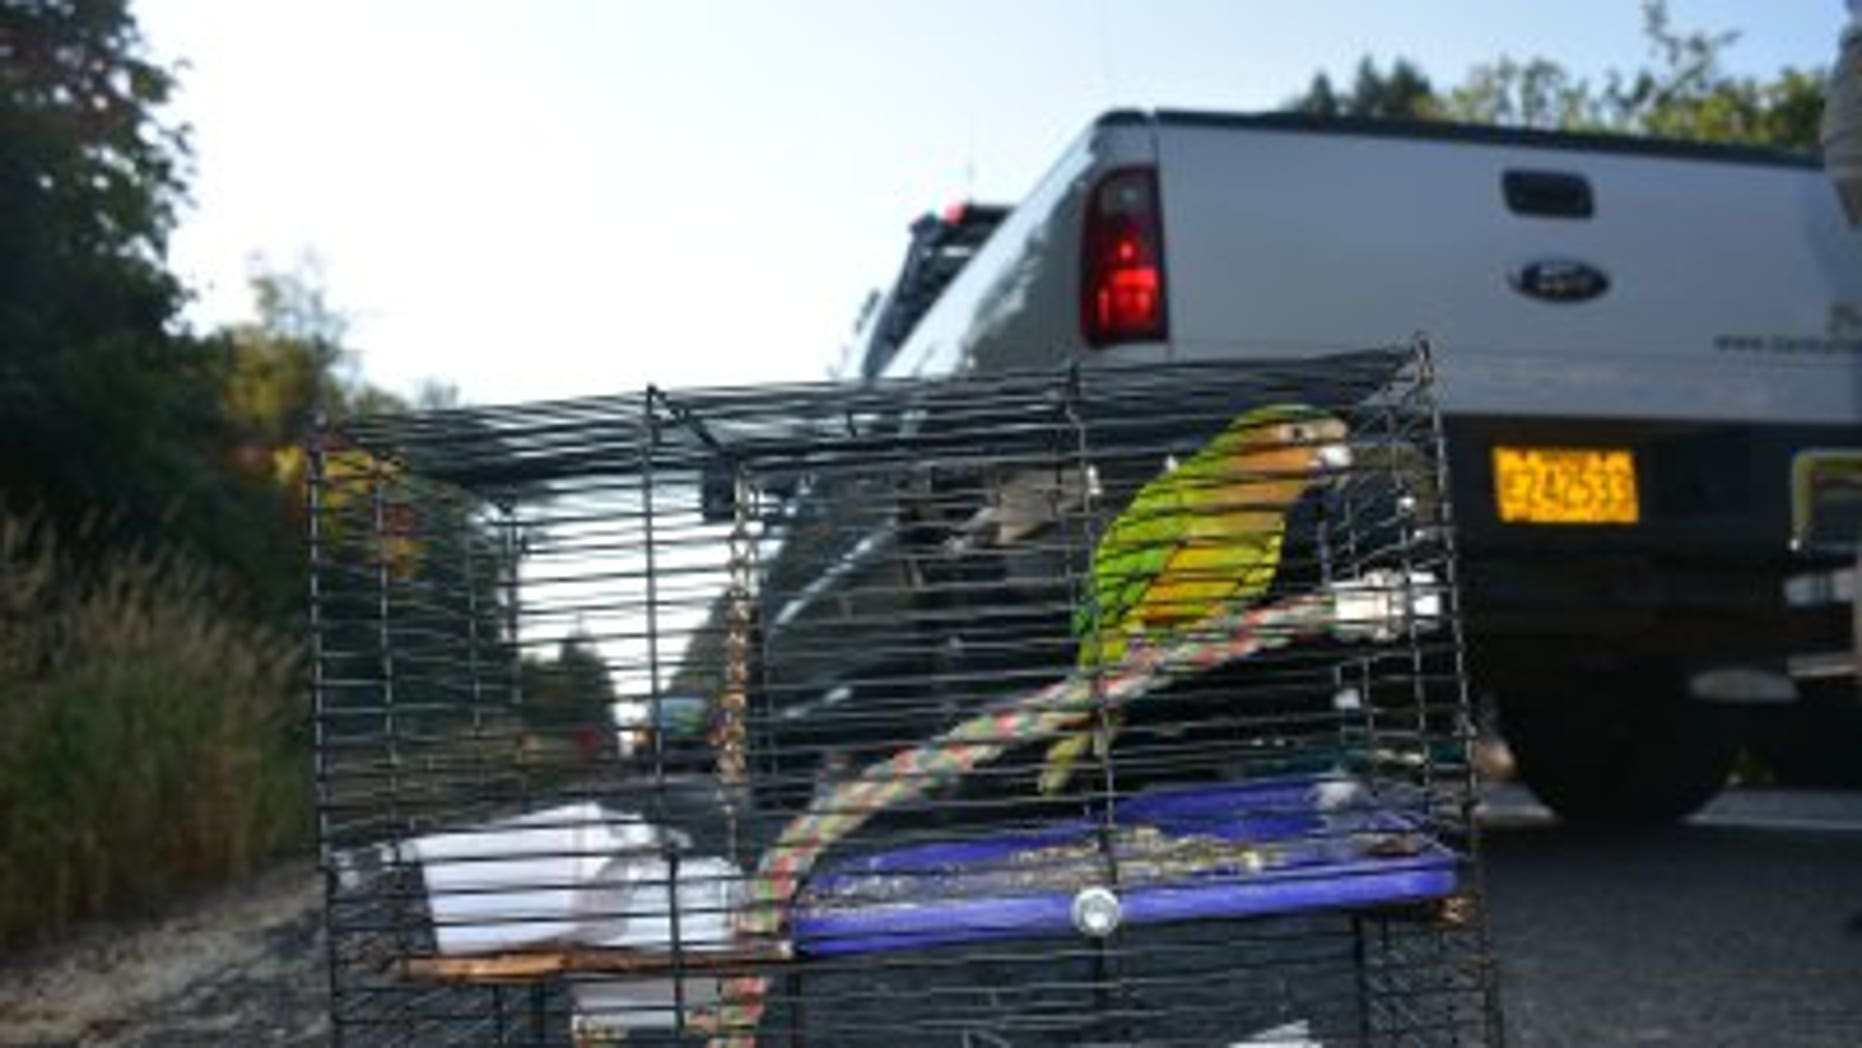 The parakeet survived the crash on Highway 26 in Oregon.